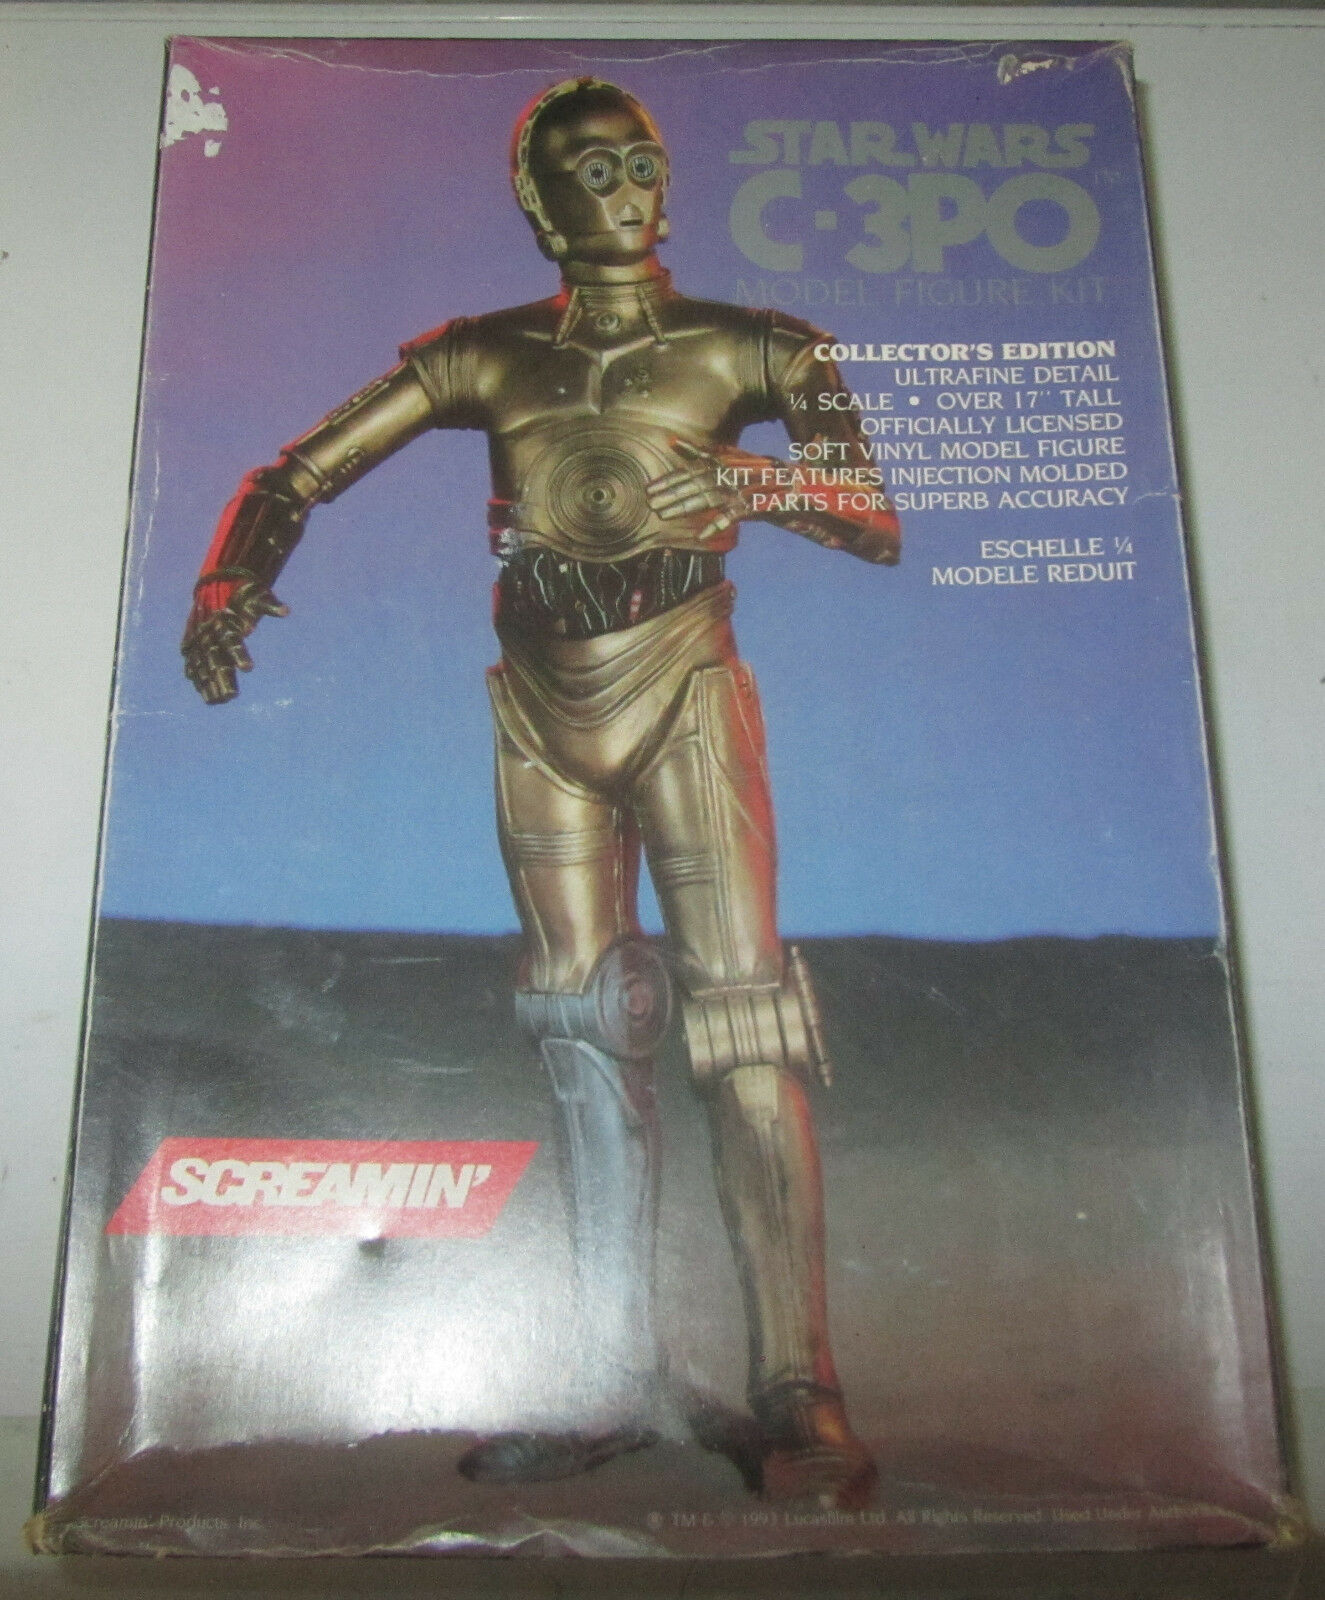 1993 STAR WARS C-3PO Vinyl 1/4 Scale Model Kit Screamin' Figure SPESE GRATIS